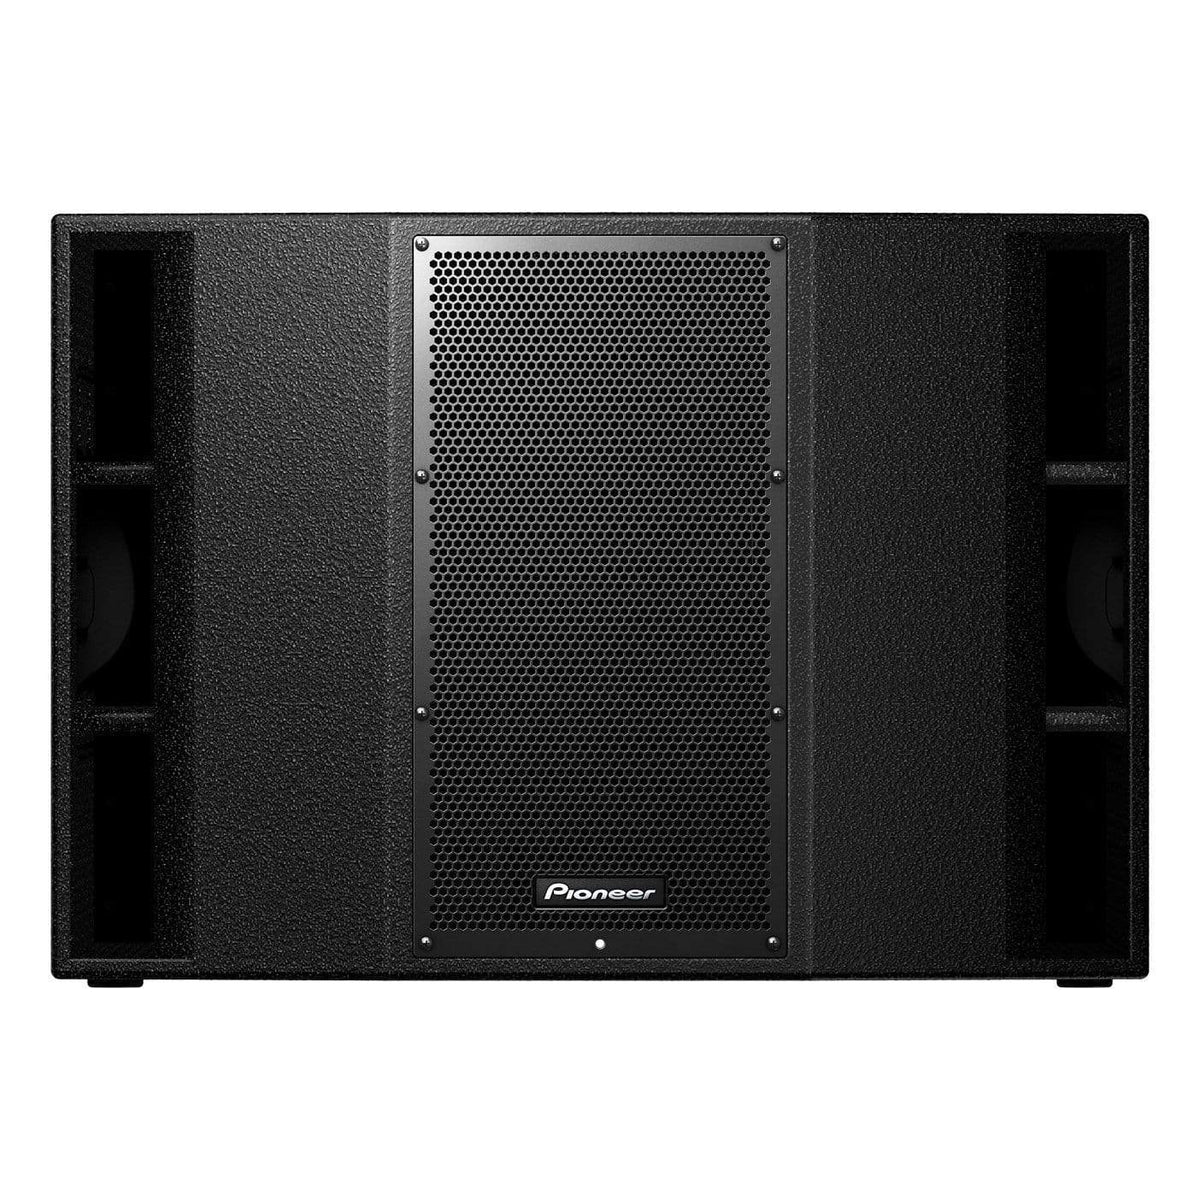 "Pioneer XPRS 215S Twin 15"" Active Subwoofer"